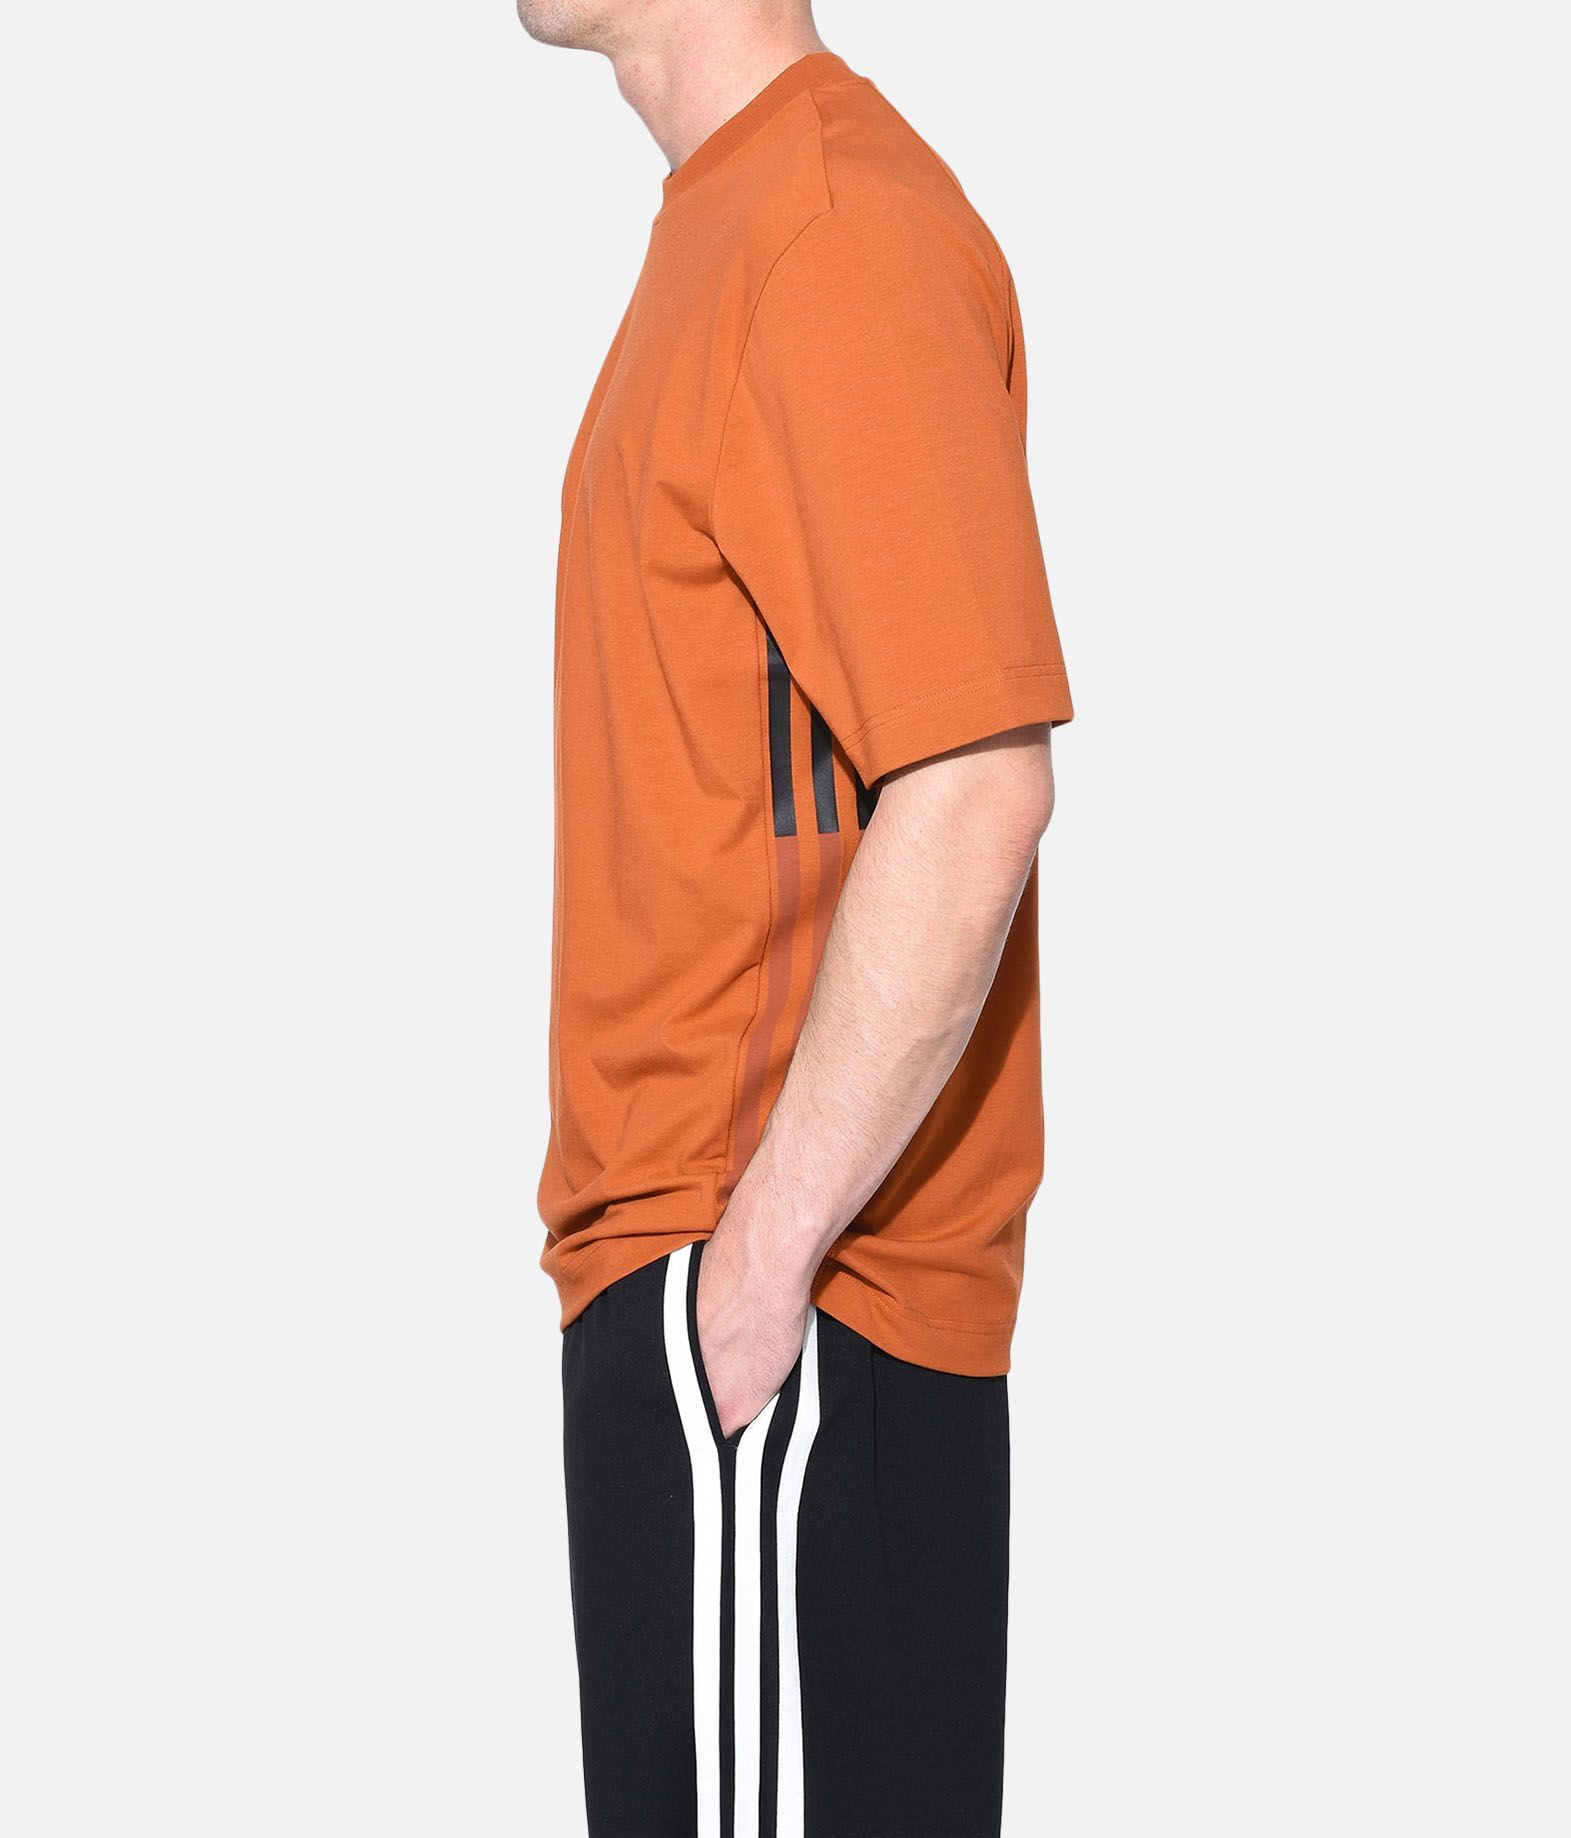 Y-3 Y-3 3-Stripes Tee Kurzärmliges T-shirt Herren e